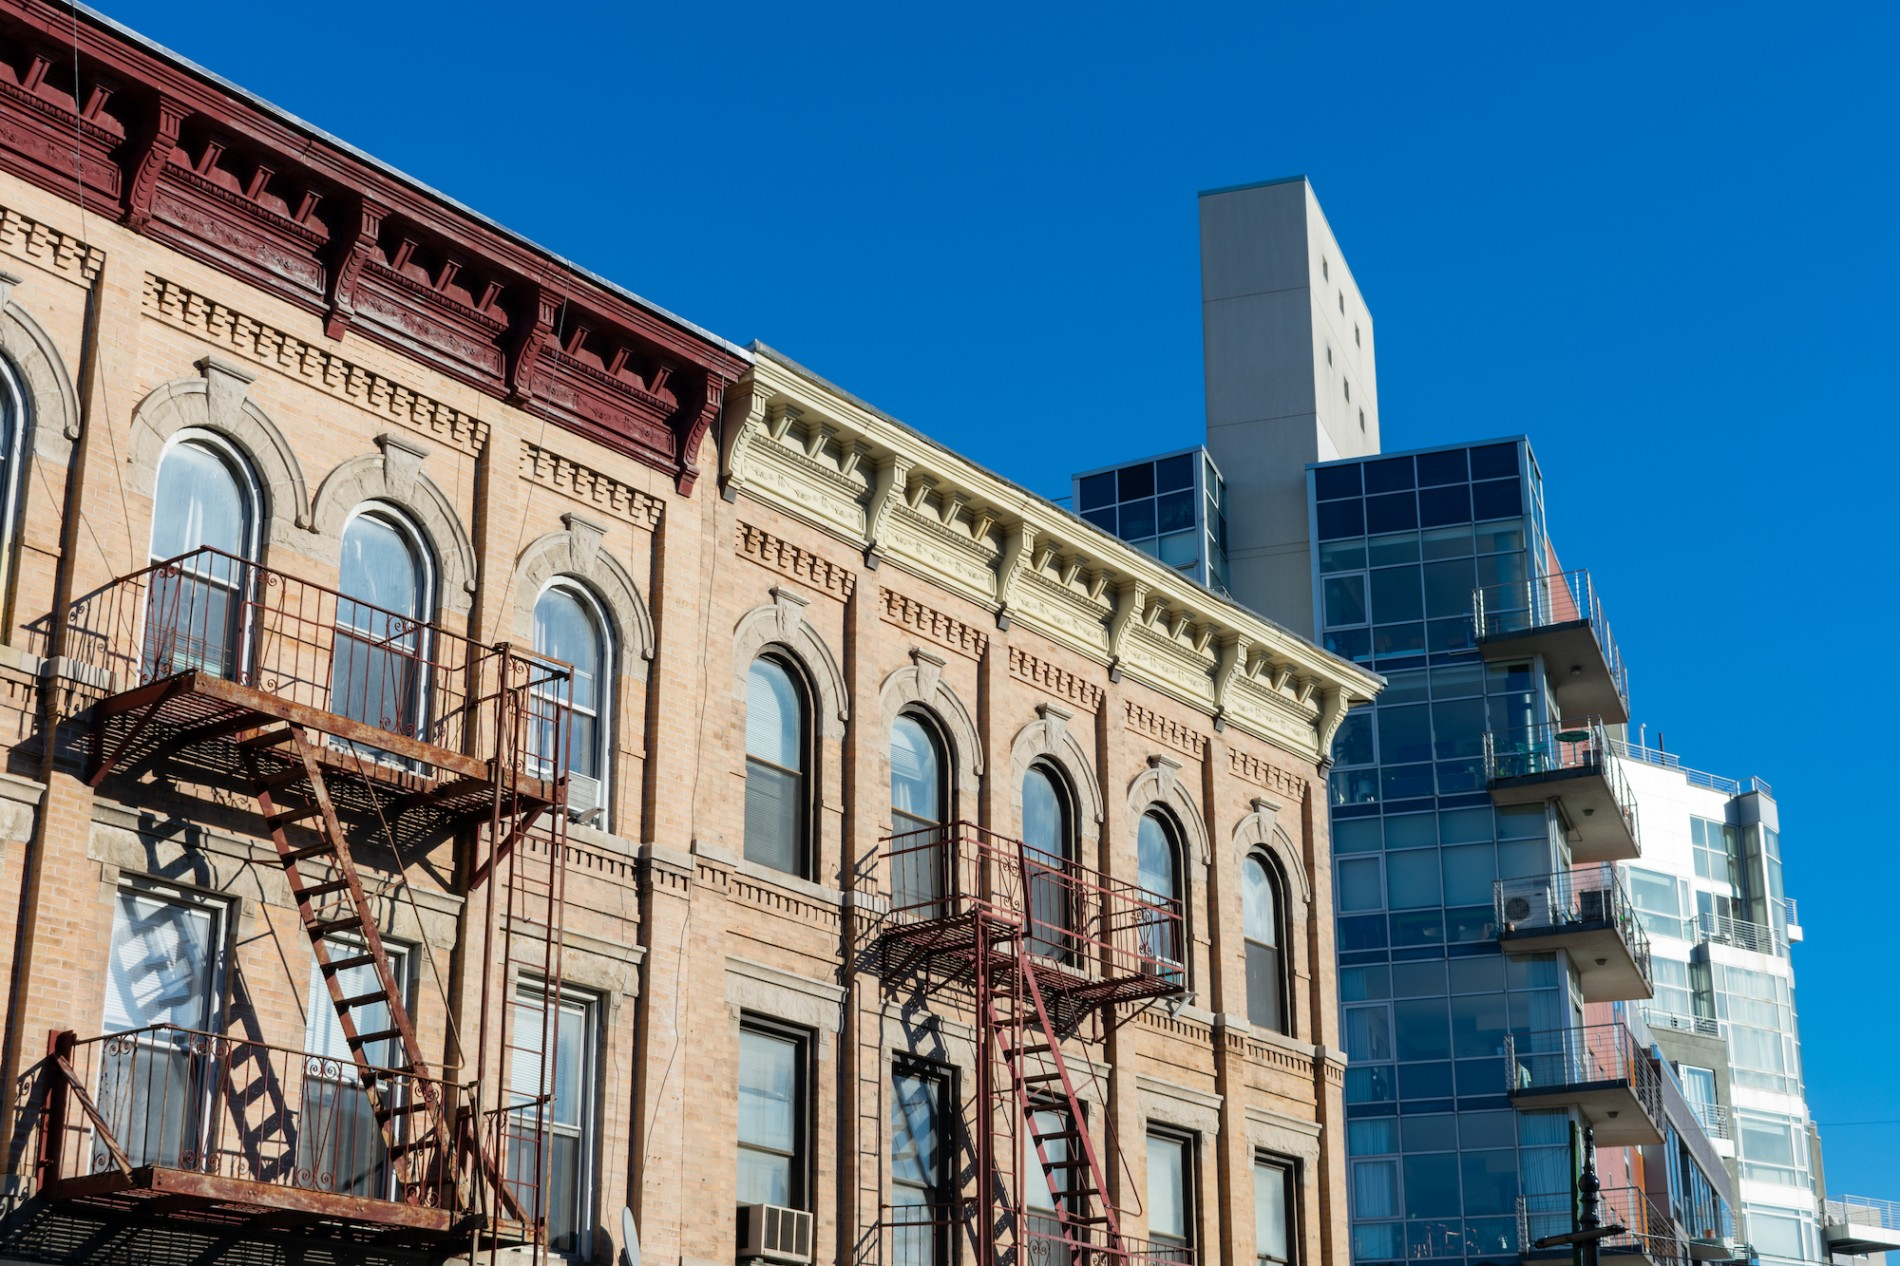 Prewar buildings and new construction in Greenpoint Brooklyn